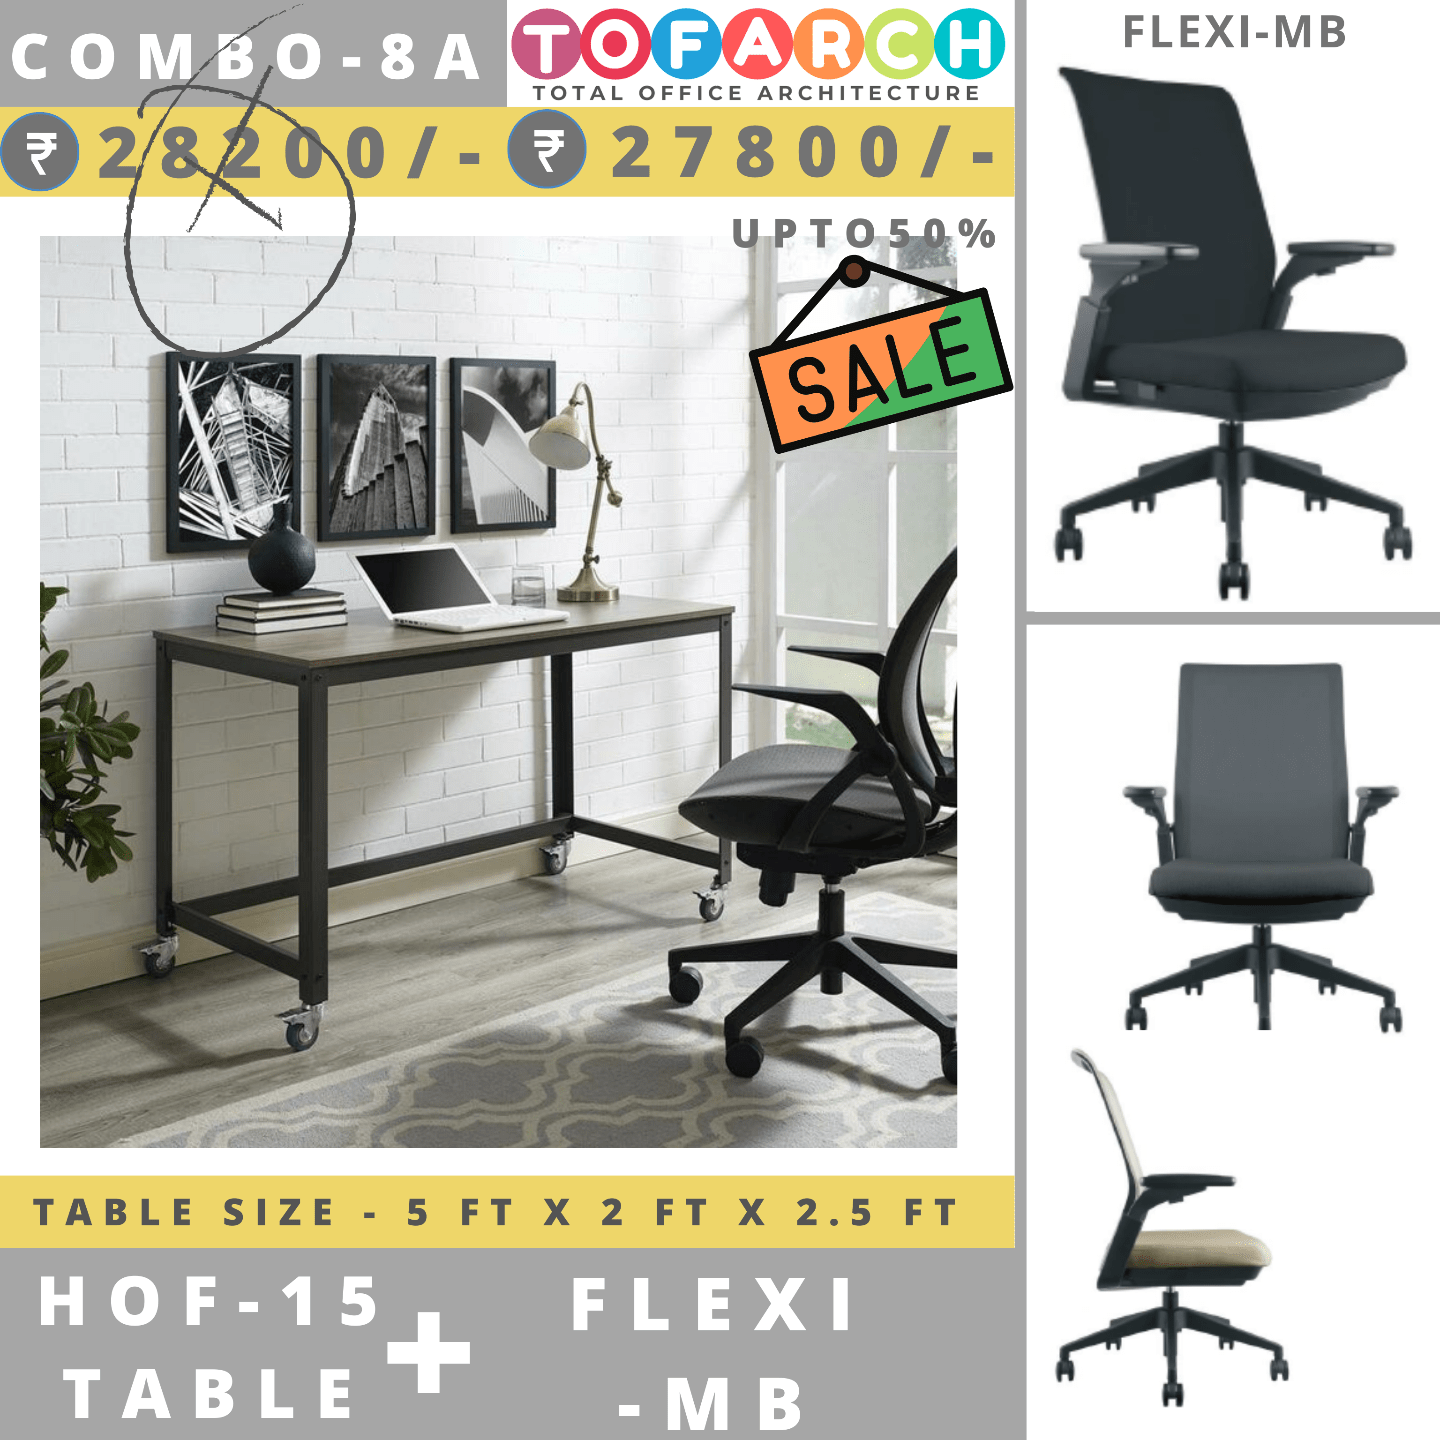 Table Chair Combo - 8A (HOF 15 Table + FLEXI MB Chair)